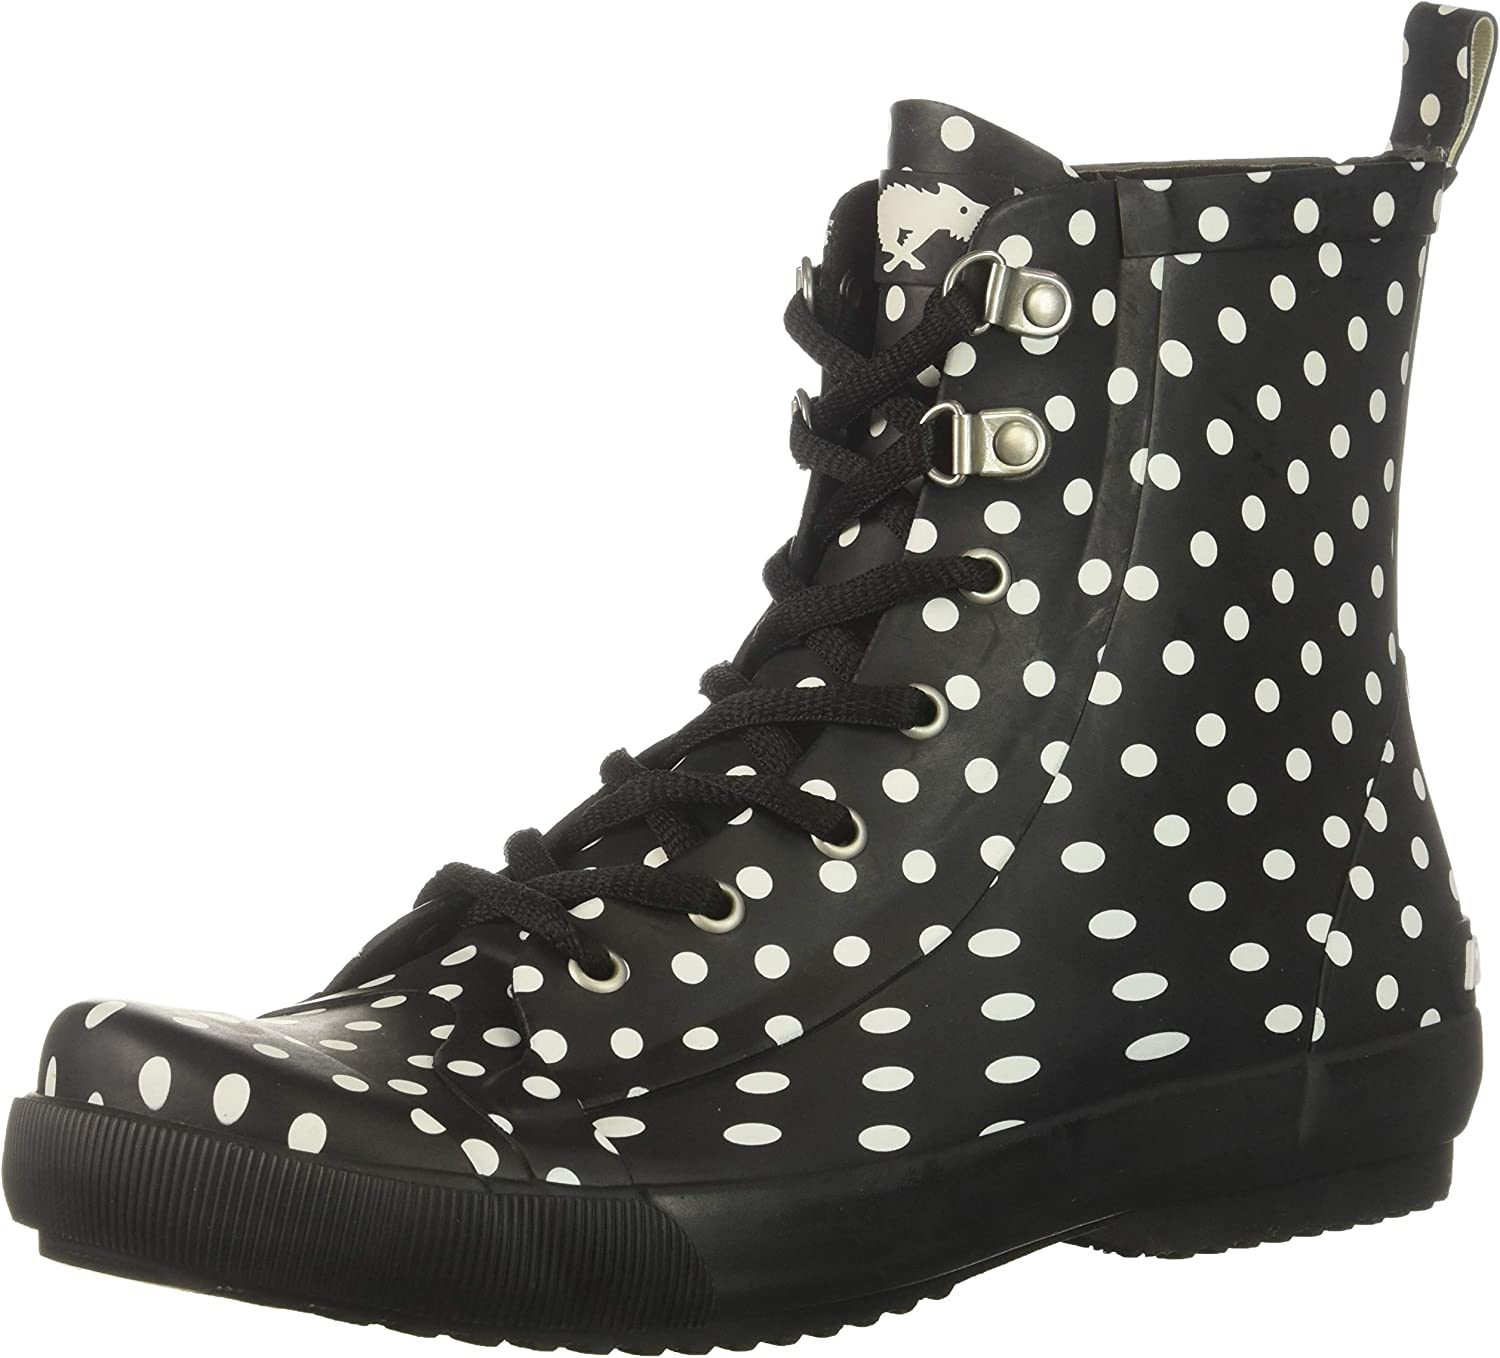 Rocket Dog Womens Rainy Rubber W Off White Dot Printed Rain Boot